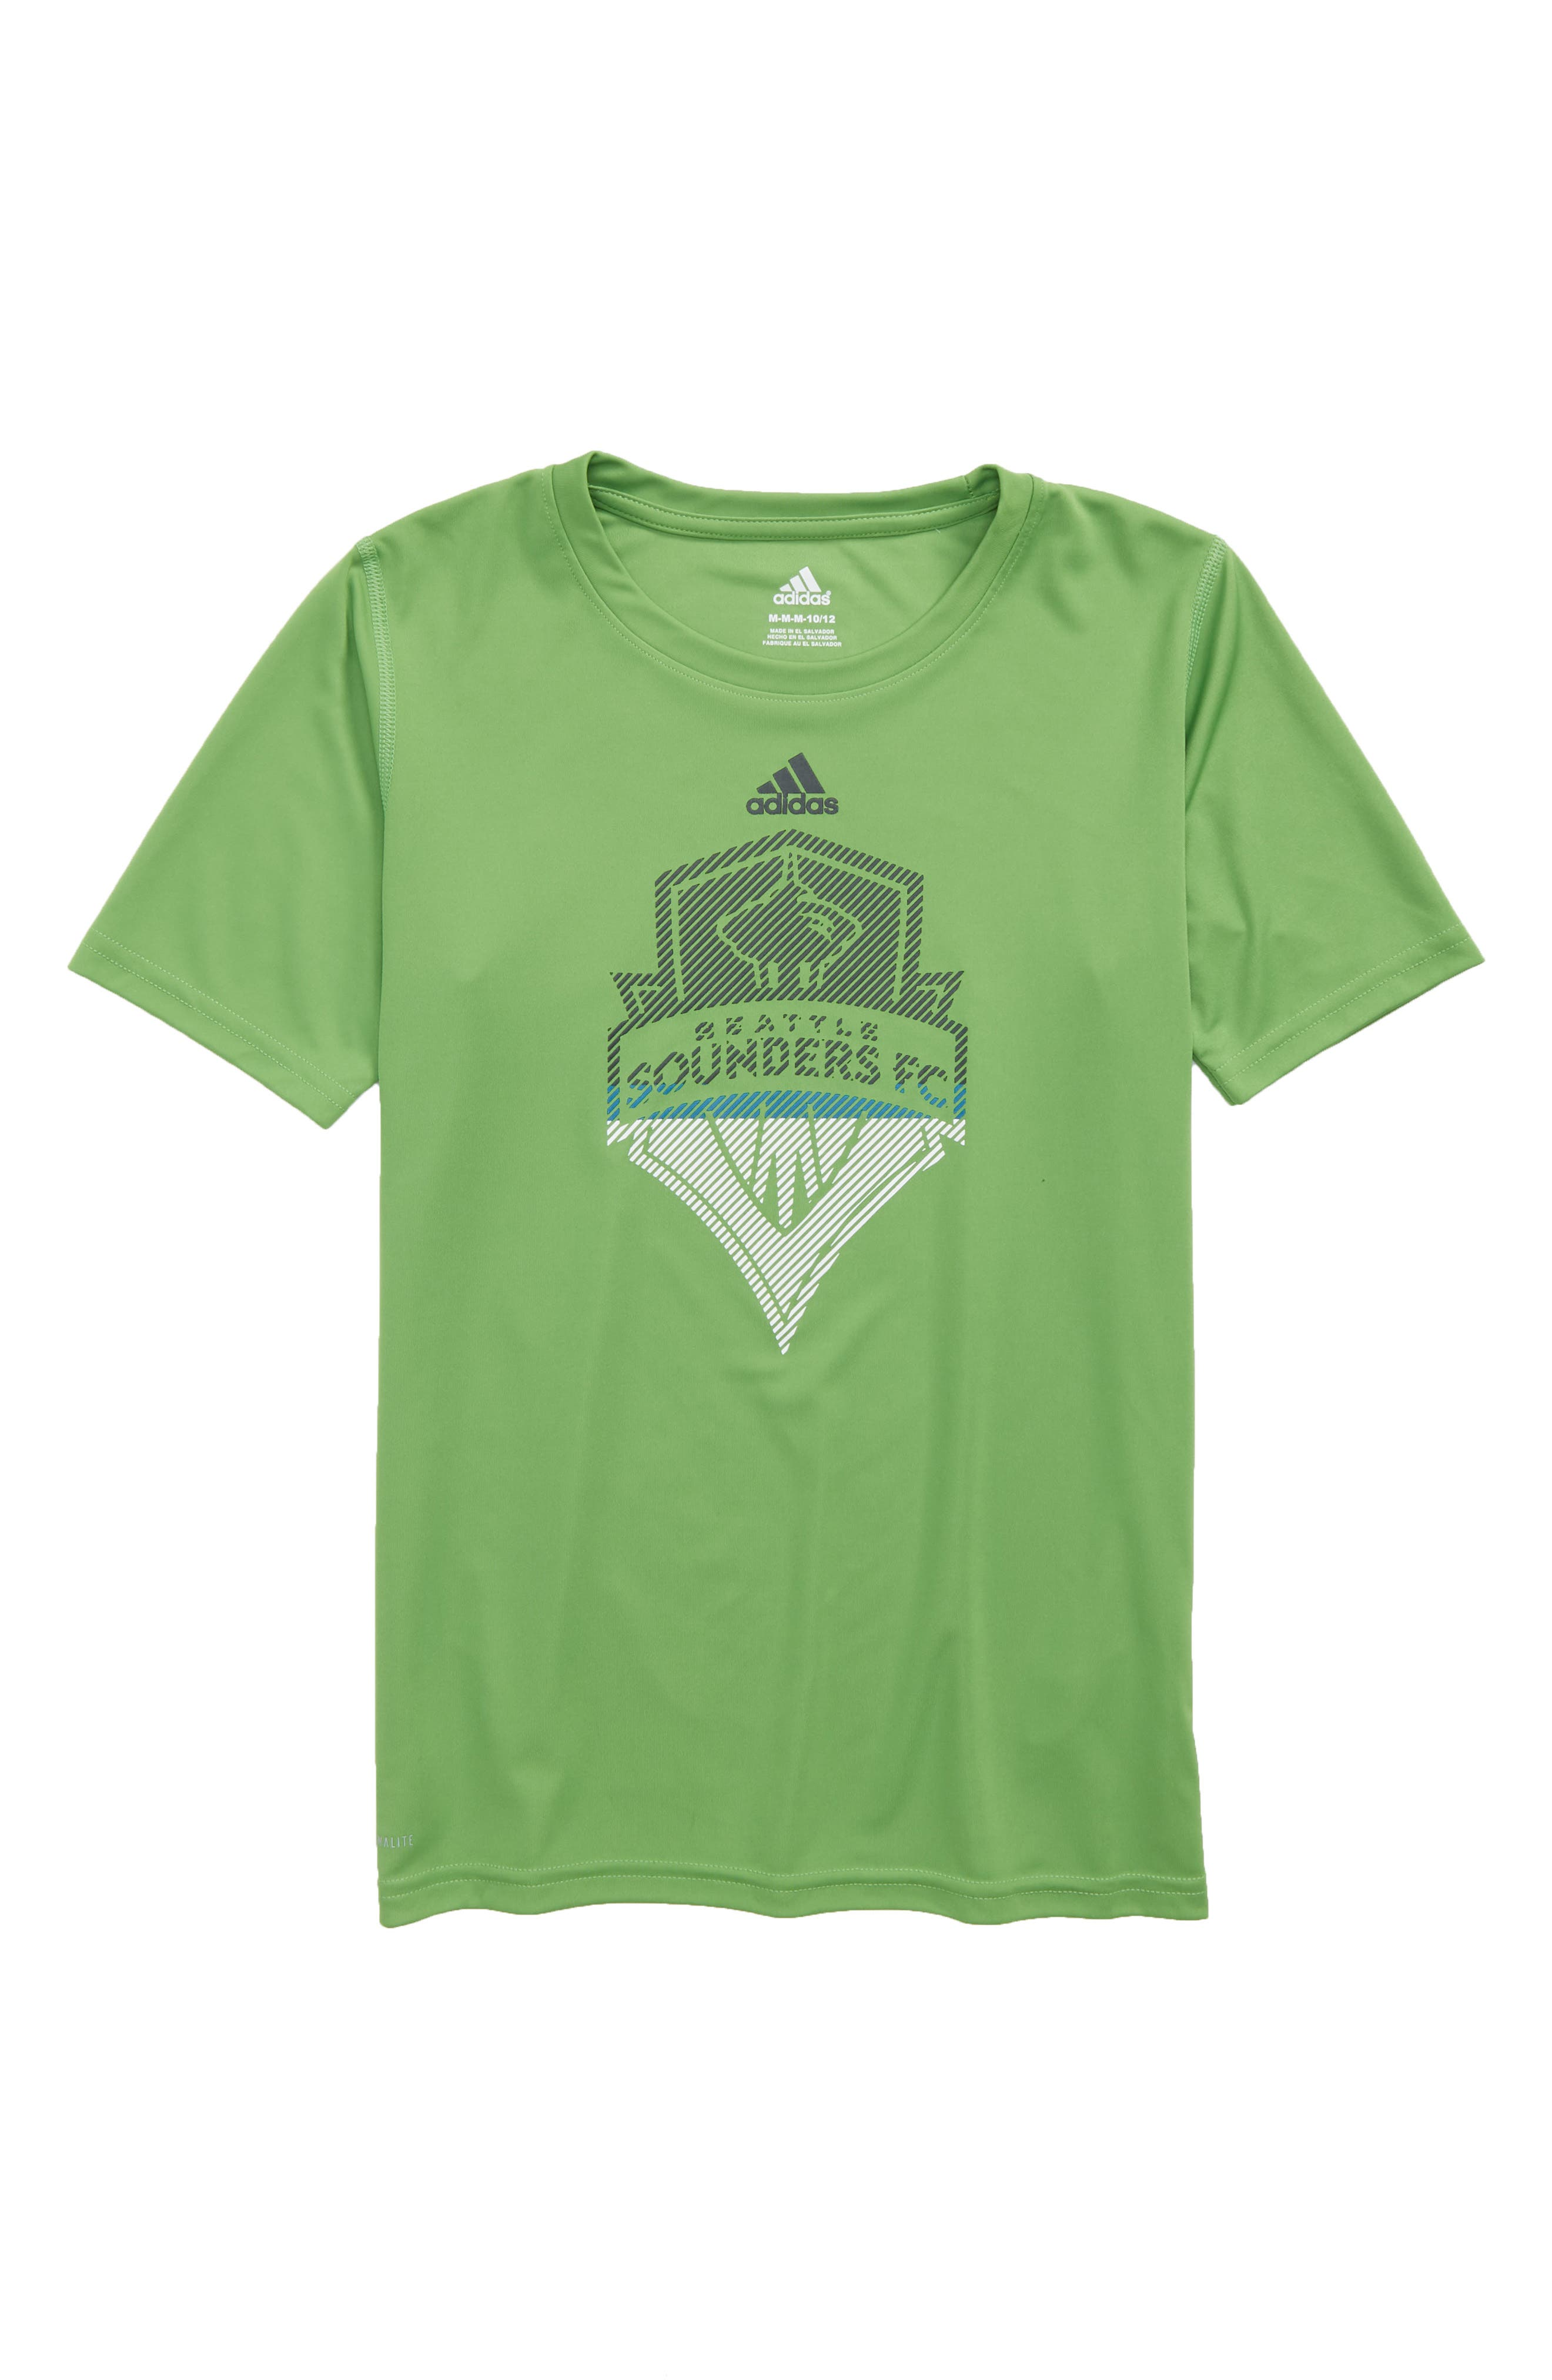 MLS Seattle Sounders FC Climalite<sup>®</sup> T-Shirt,                         Main,                         color, Green